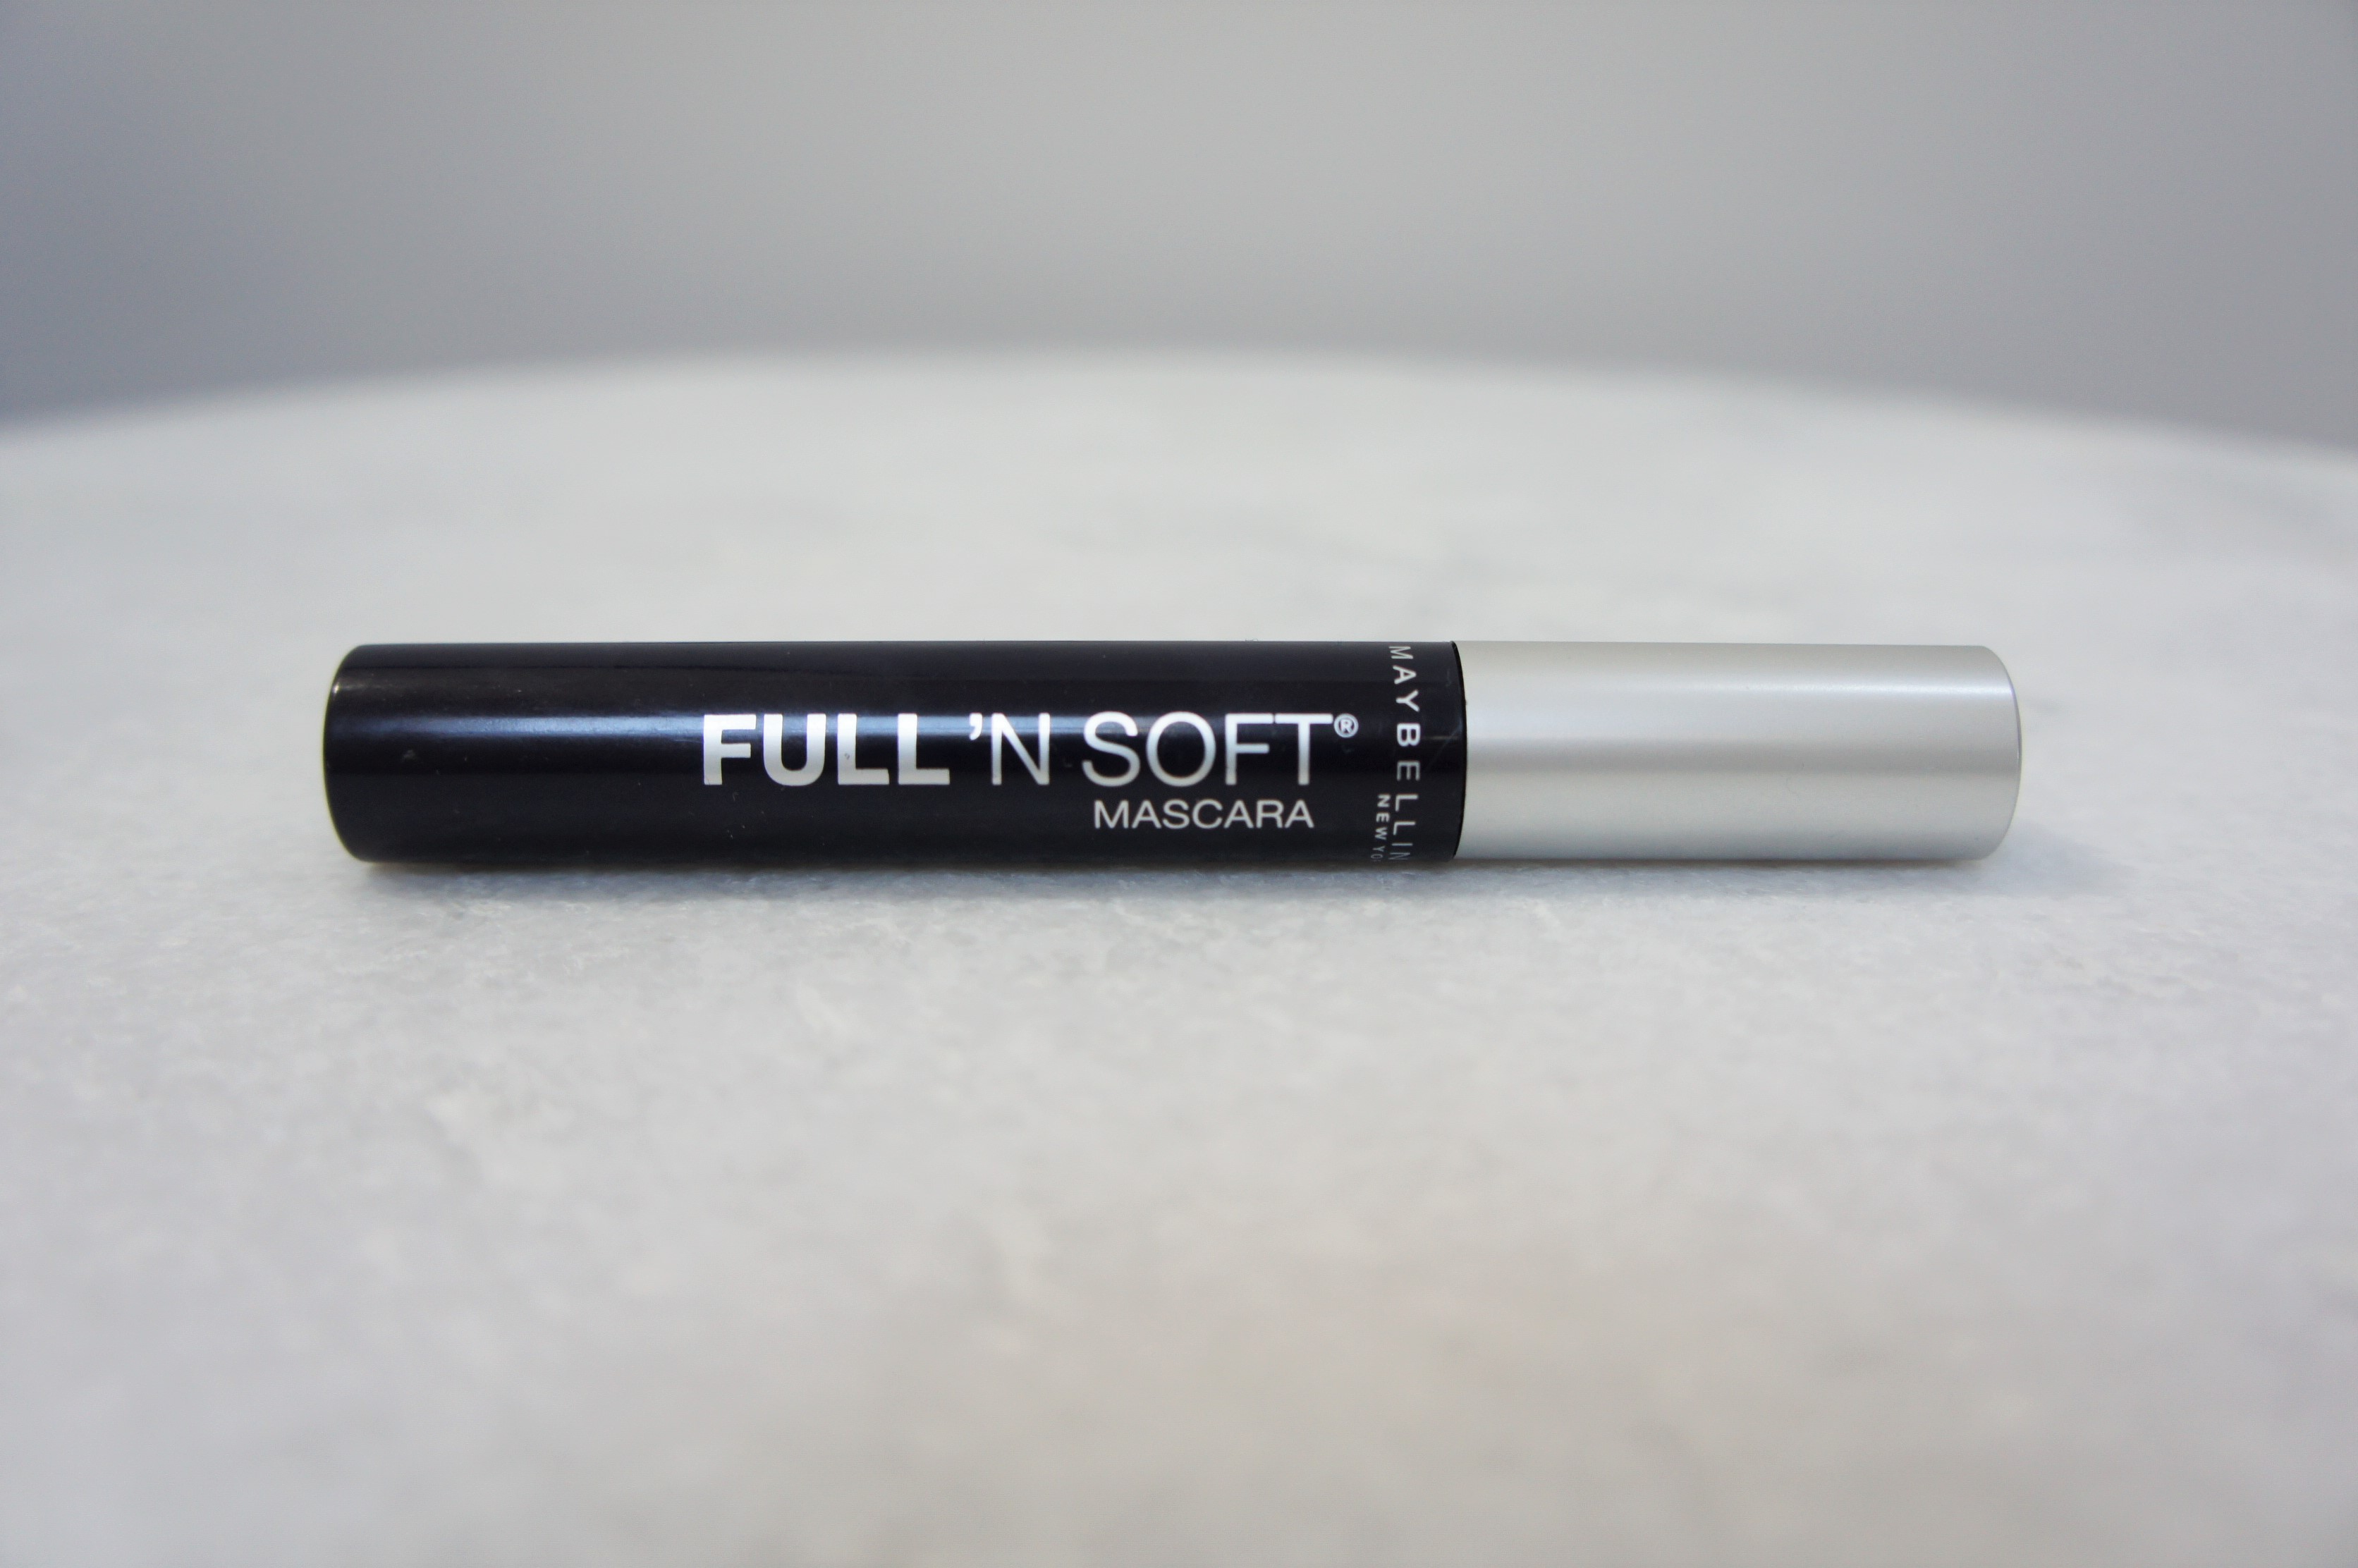 Maybelline Full 'N Soft mascara